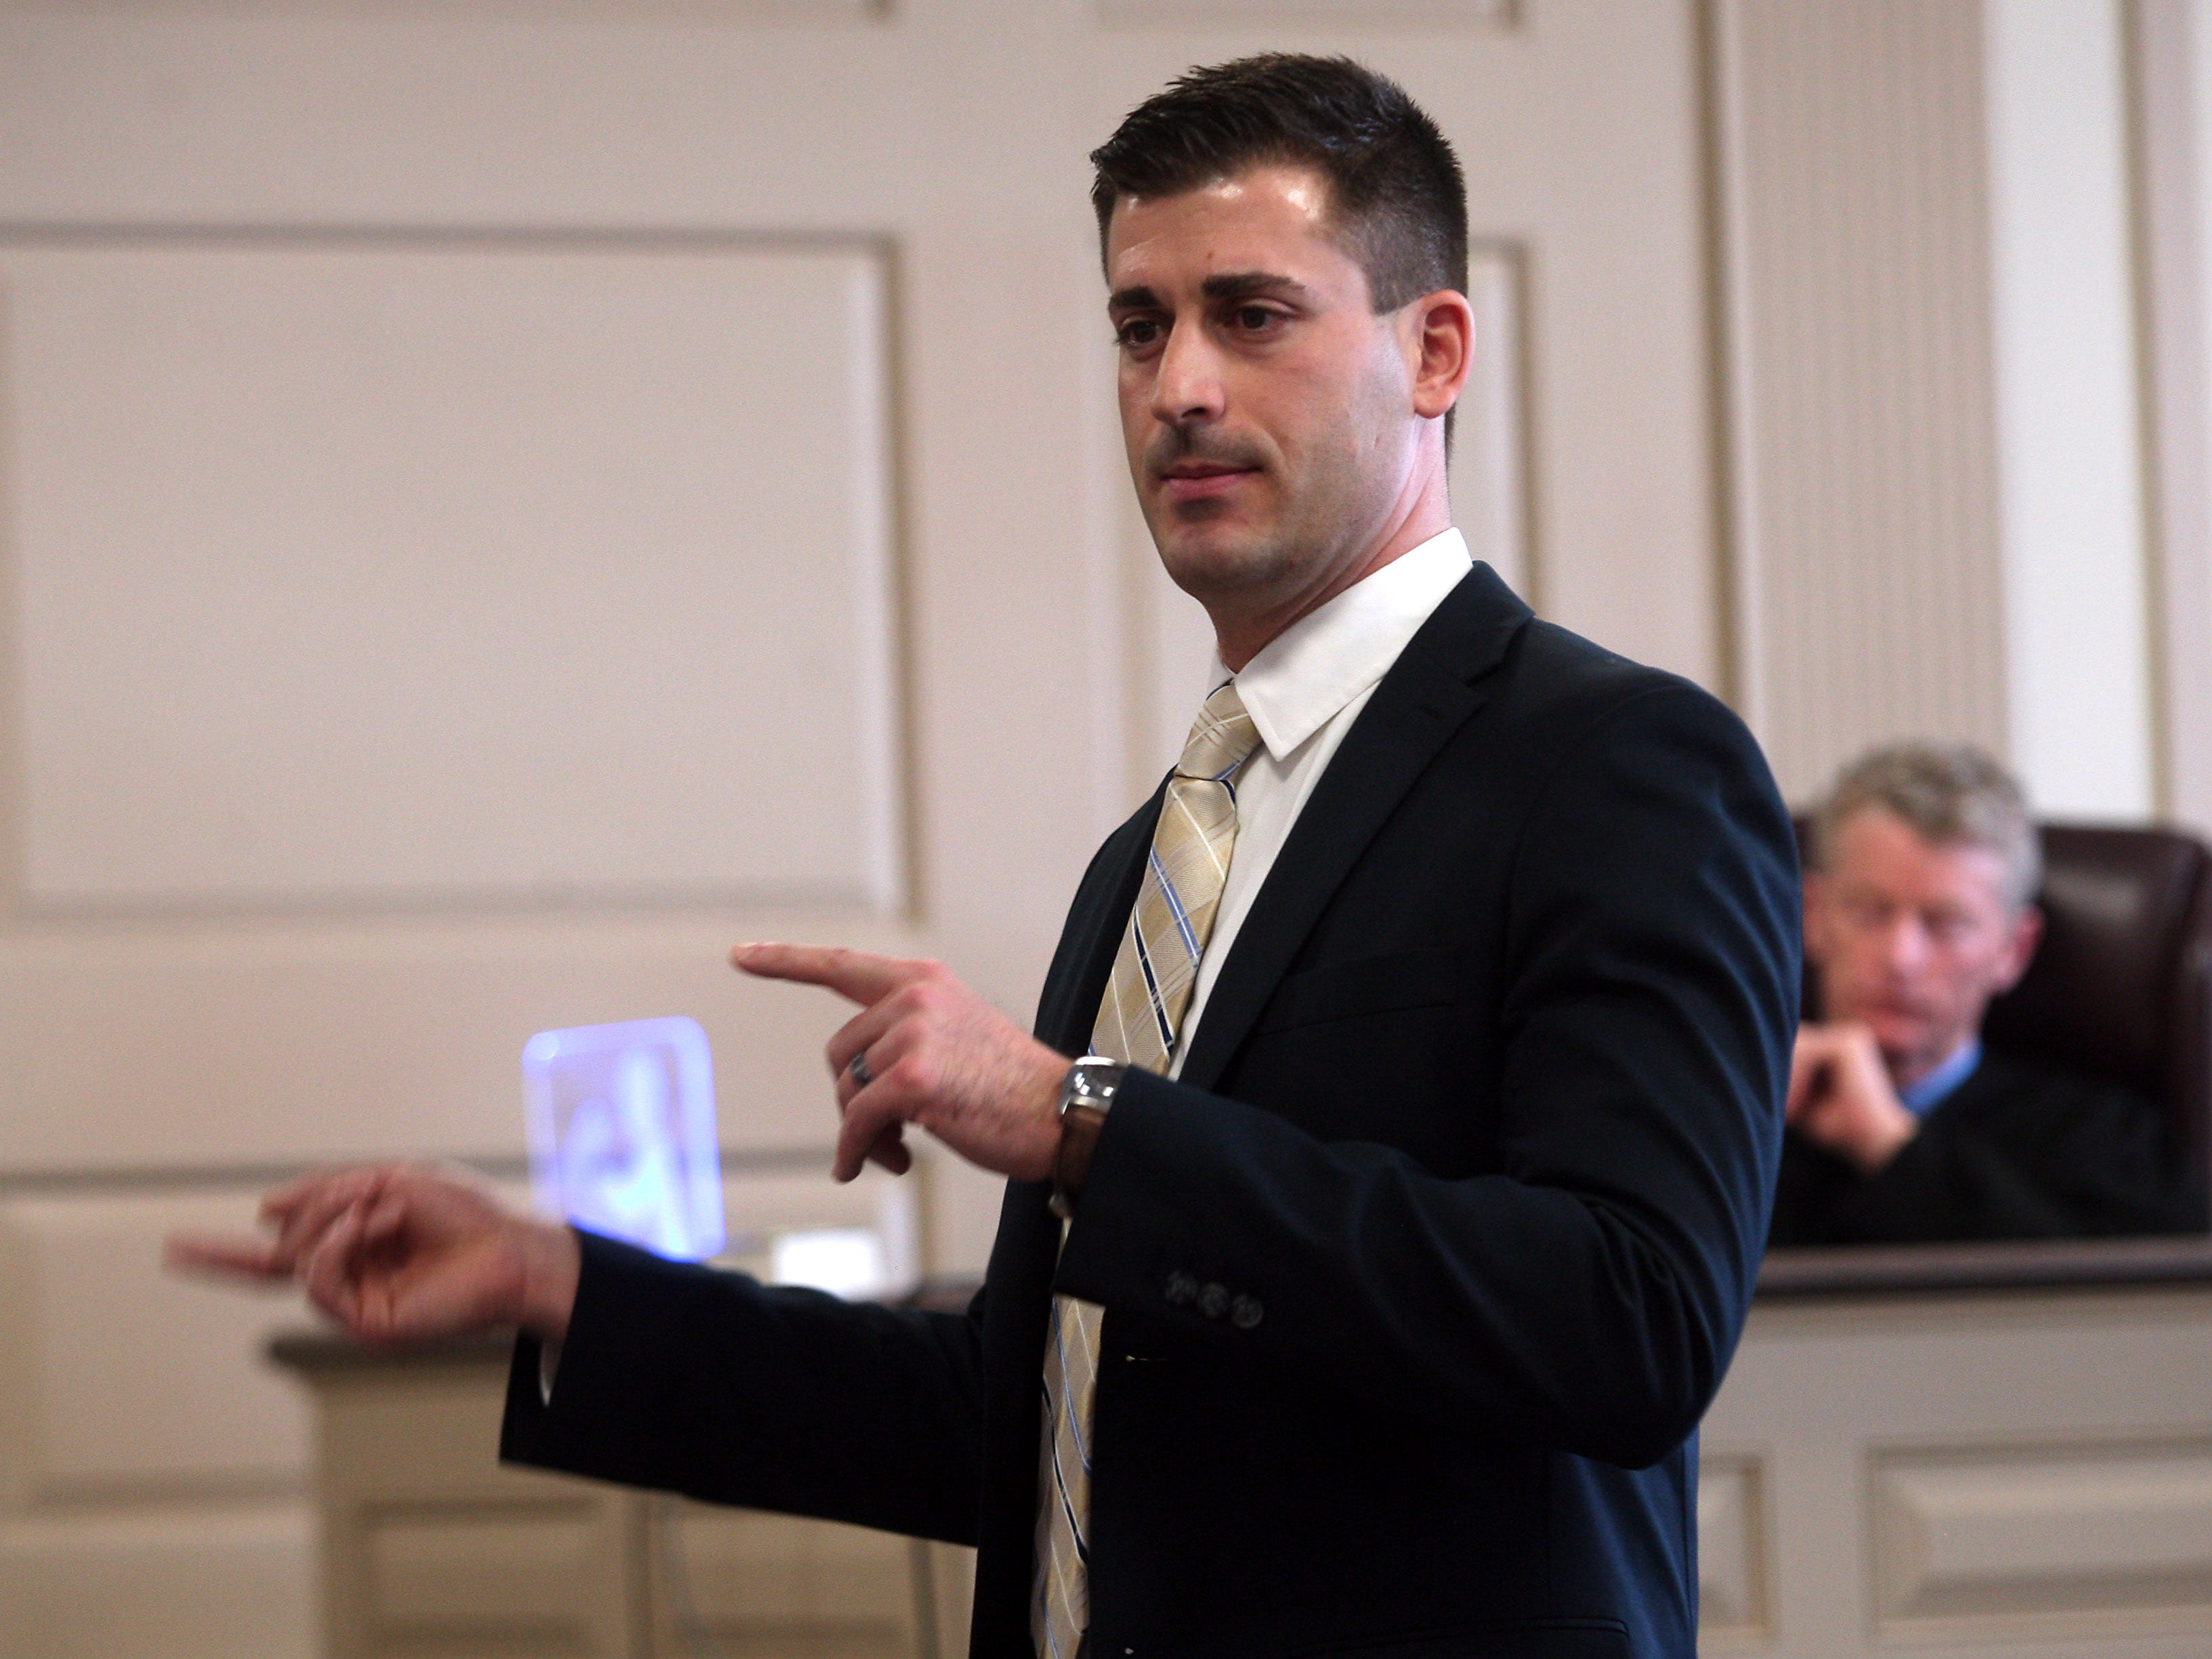 Morris County Assistant Prosecutors Matthew Troiano gestures during opening statements in the murder trial of Kashif Parvaiz, accused of killing his wife Nazish Noorani in August 2011. February 4, 2015. Morristown, N.J. Bob Karp/Staff Photographer.